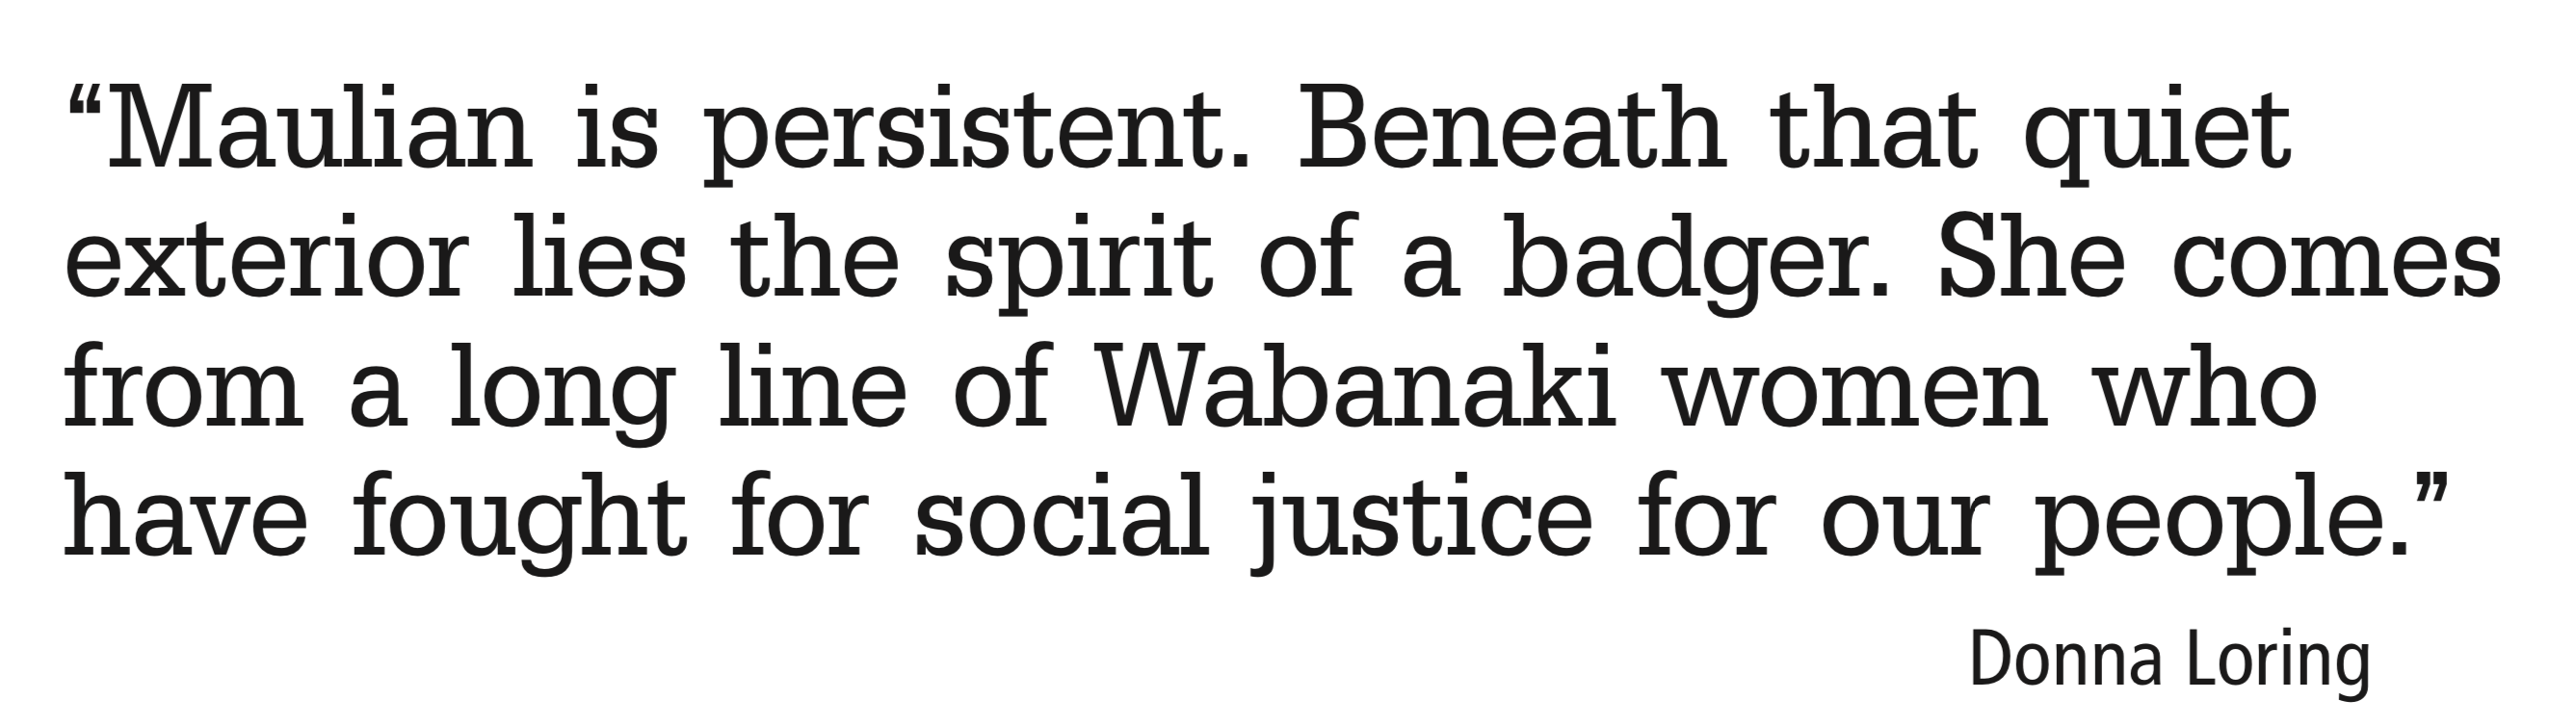 Maulian is persistent. Beneath that quiet exterior lies the spirit of a badger. She comes from a long line of Wabanaki women who have fought for social justice for our people.